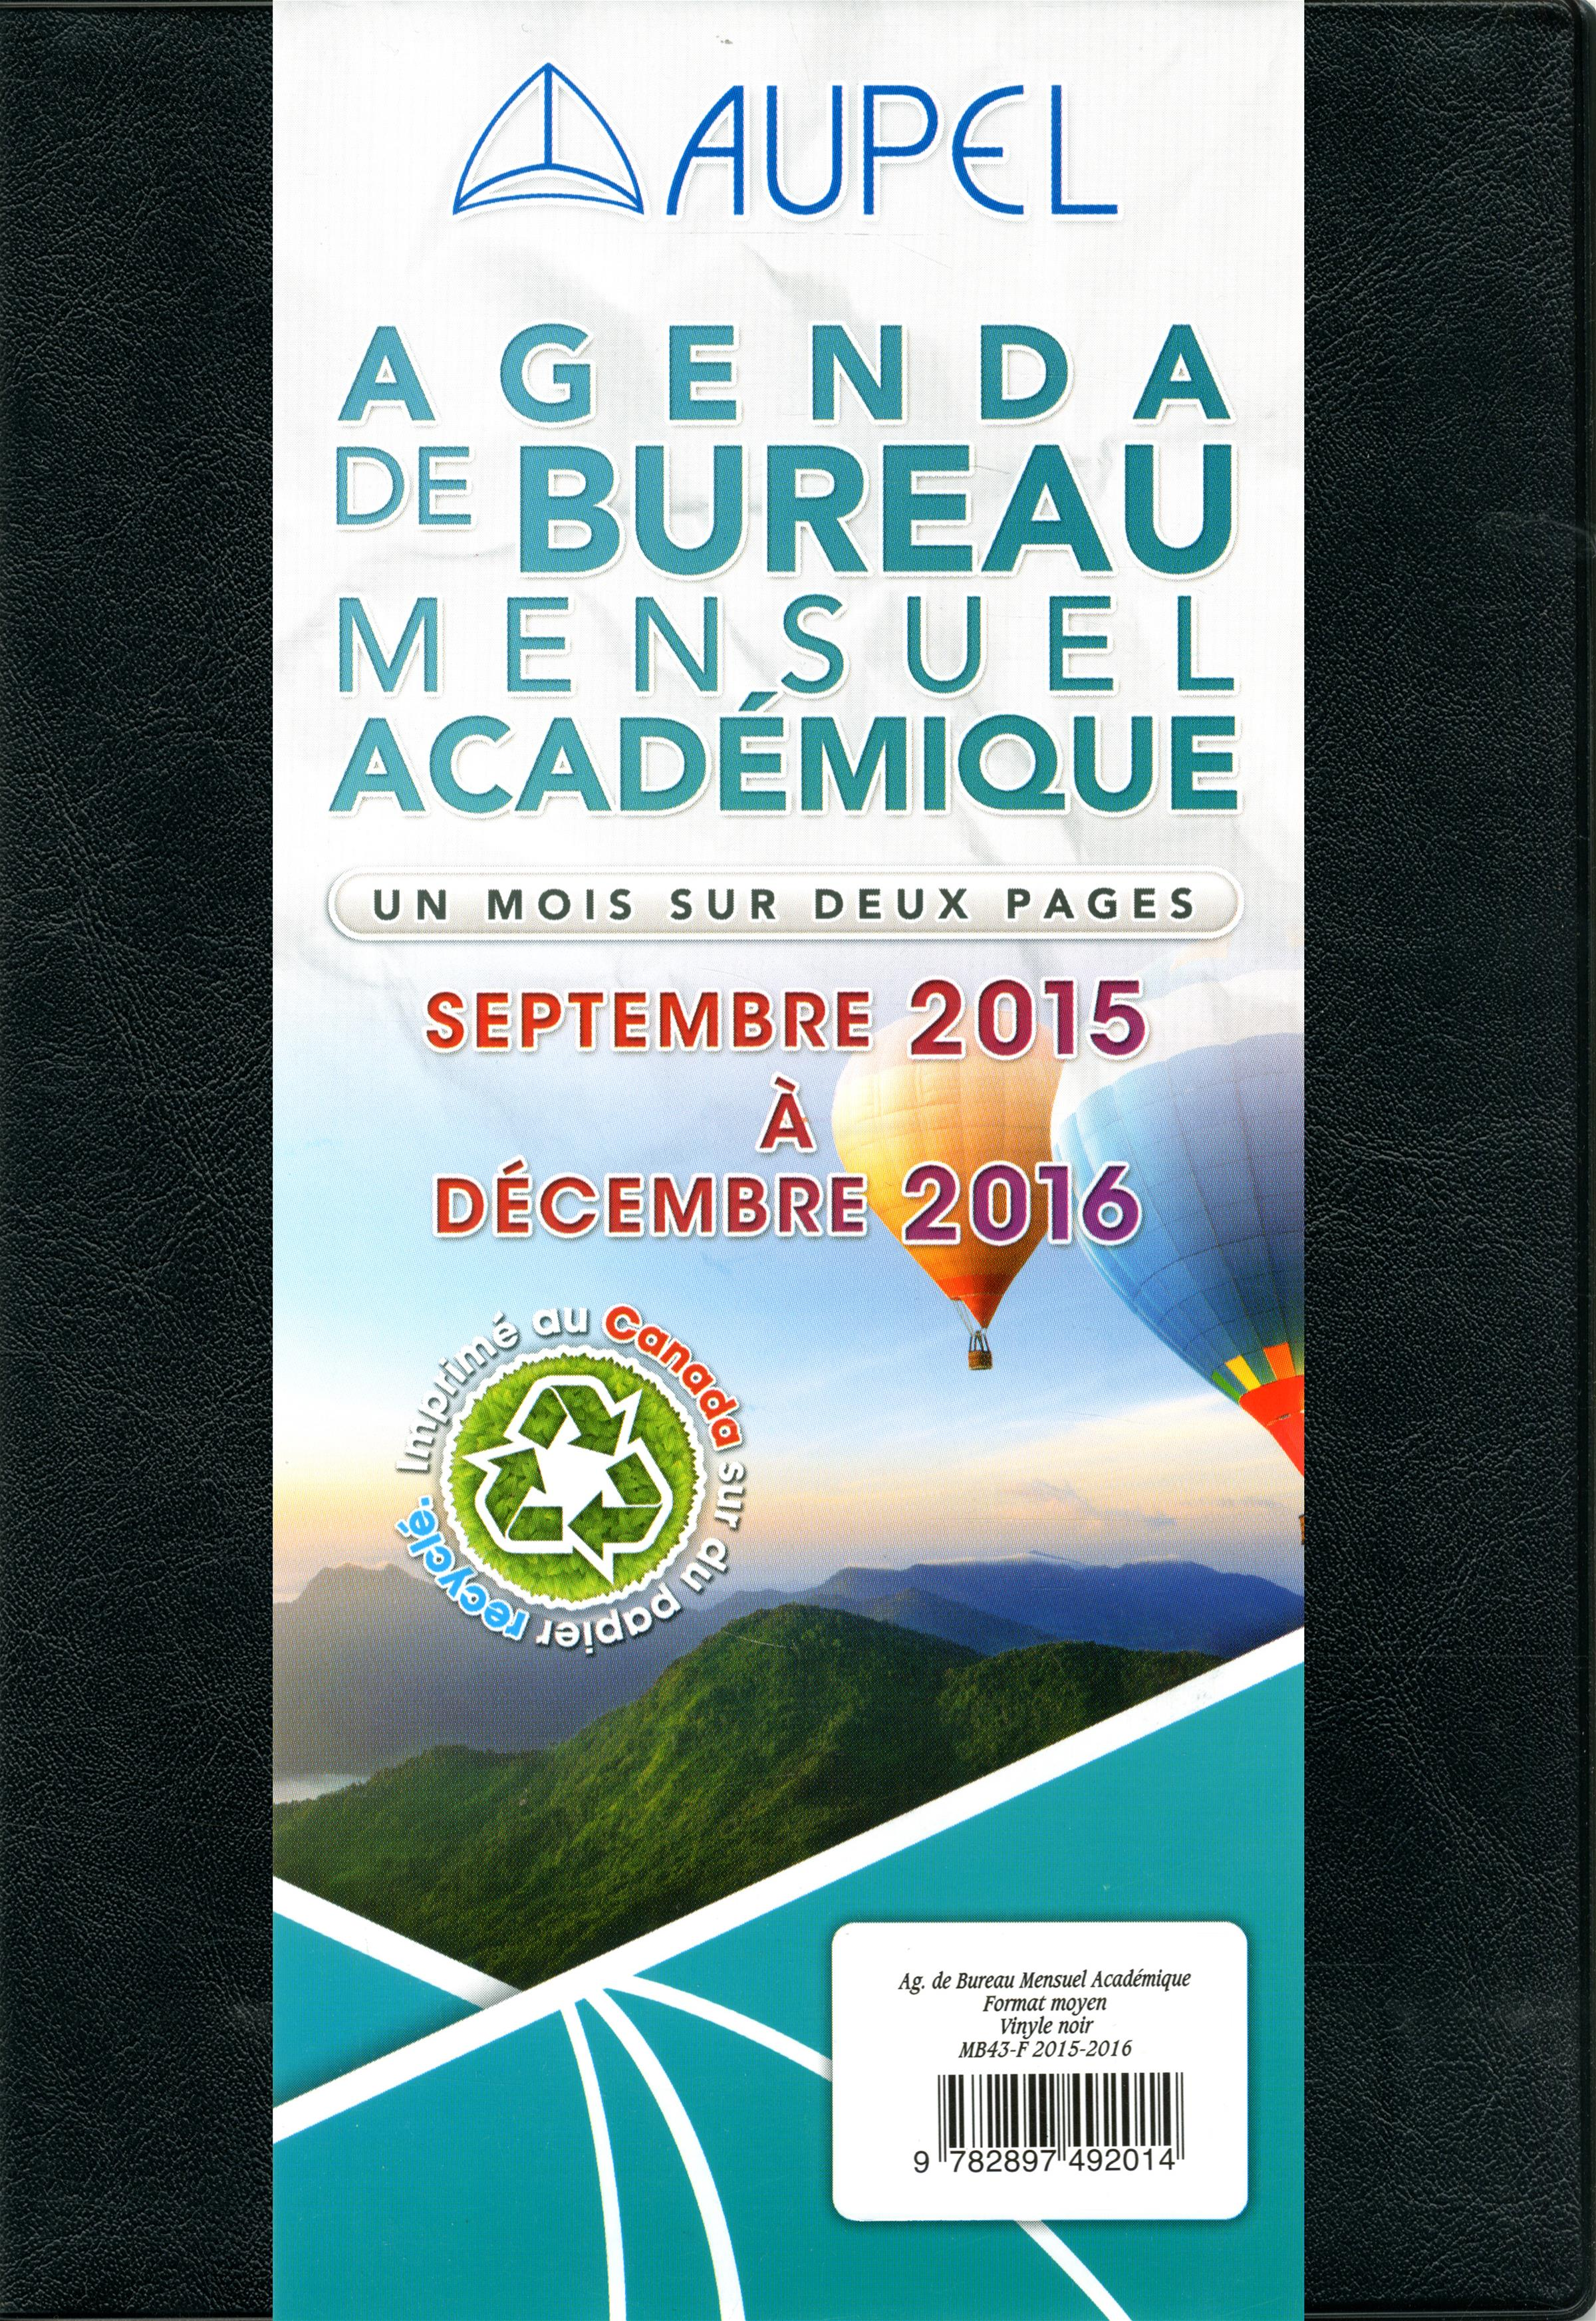 livre agenda de bureau mensuel acad mique 2015 2016 septembre 2015 d cembre 2016 format. Black Bedroom Furniture Sets. Home Design Ideas